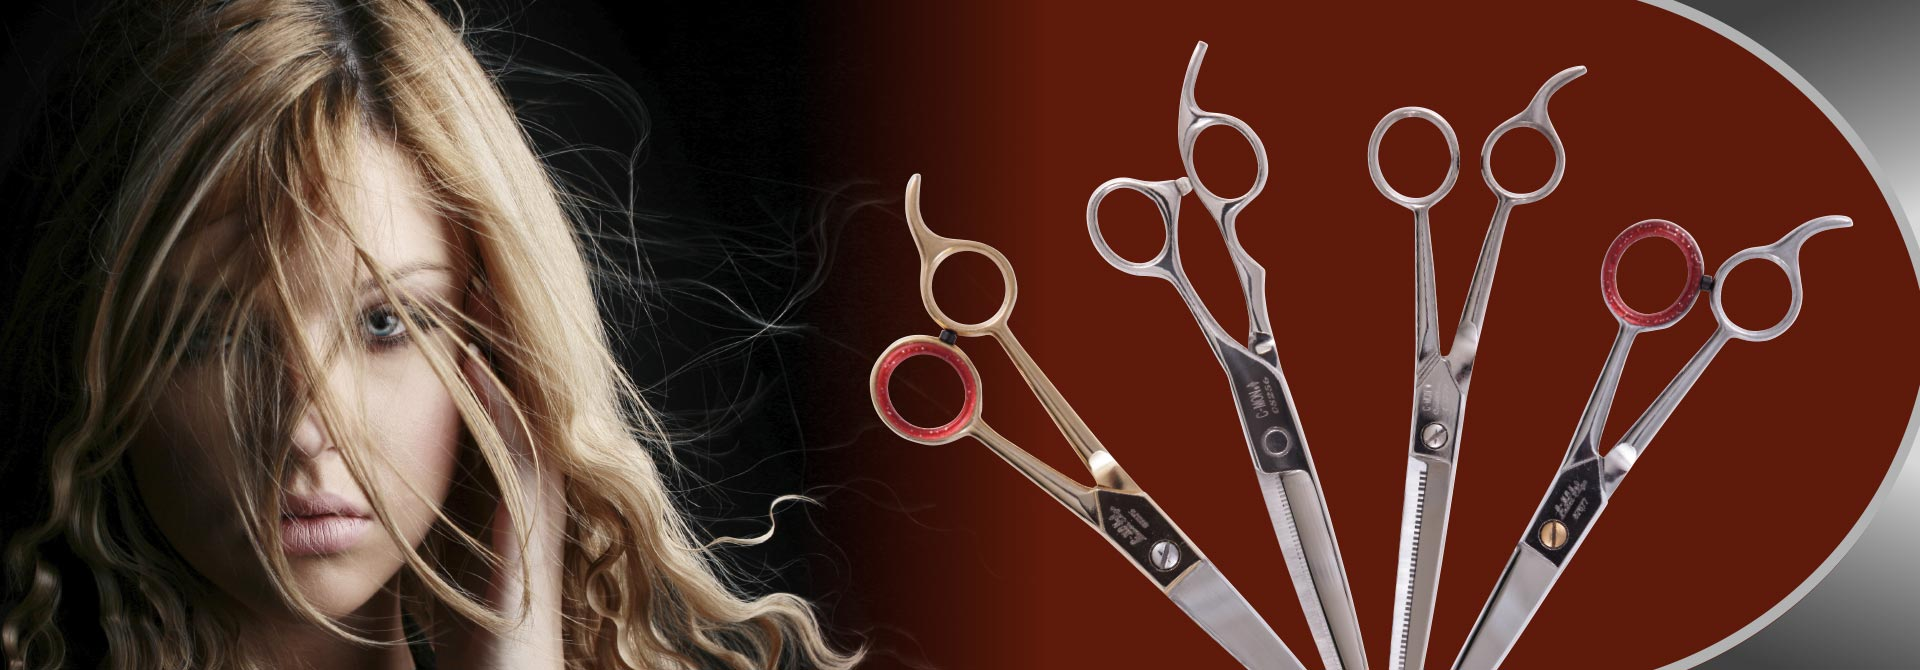 Shop Now on the new Scissors site!